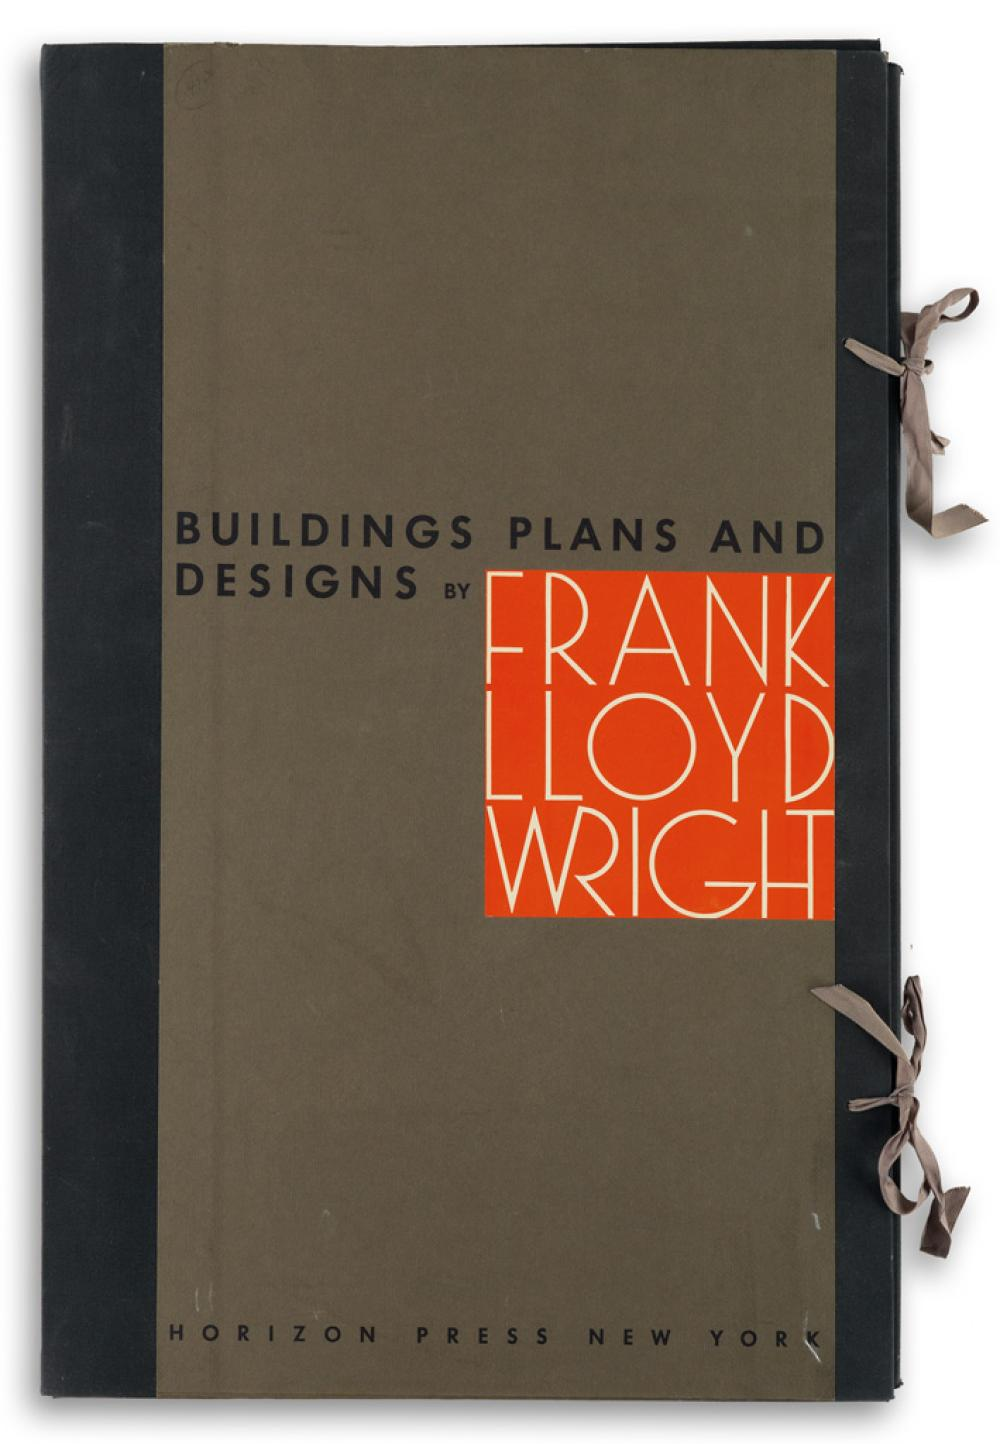 (ARCHITECTURE.) Wright, Frank Lloyd. Buildings, Plans, and Designs.